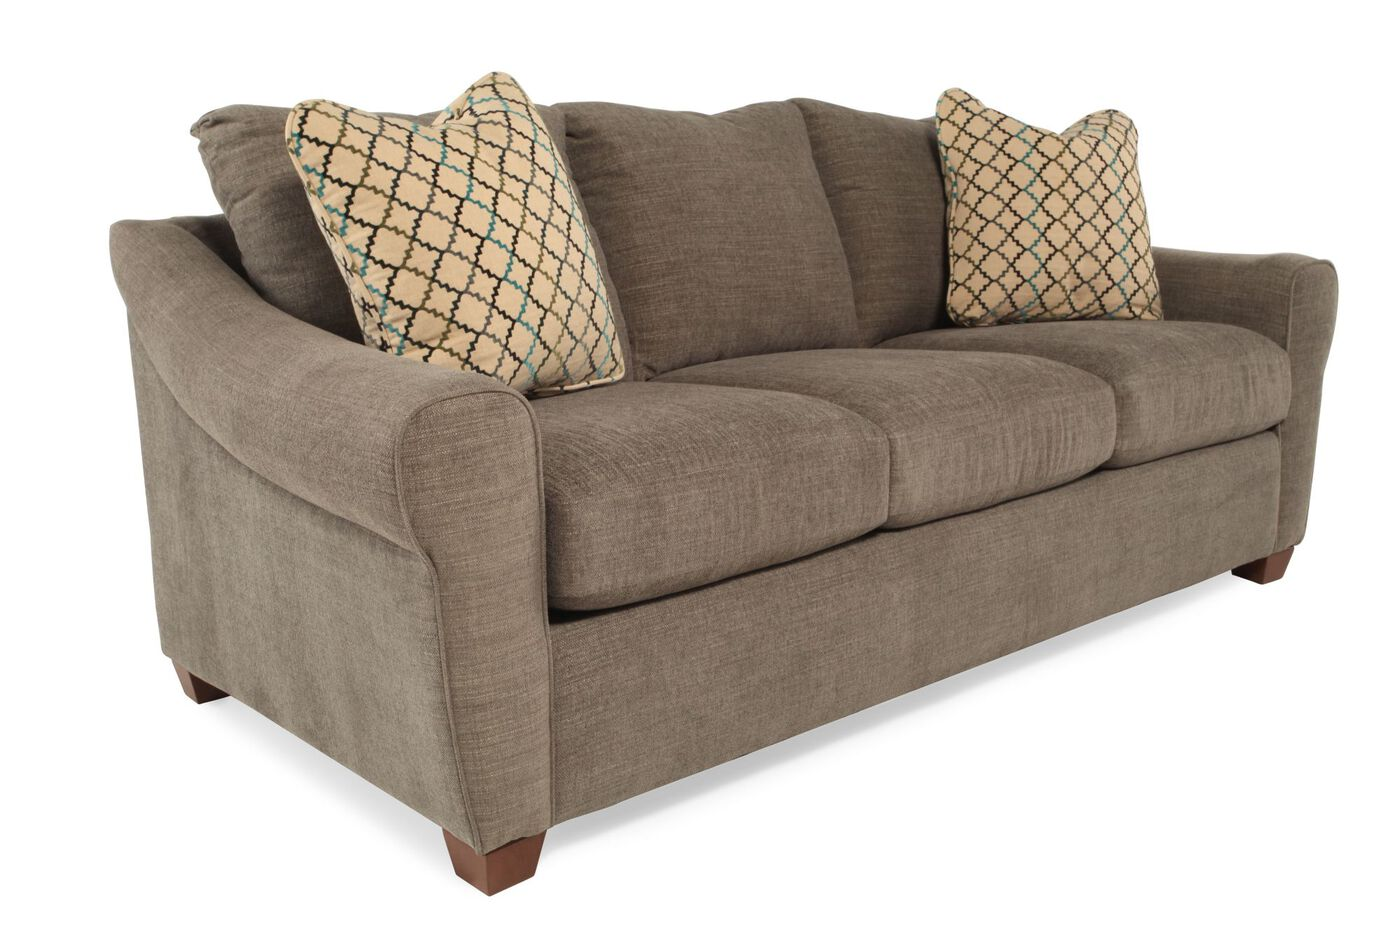 Keller Dining Room Furniture Contemporary Comfort Core Sofa In Brown Mathis Brothers